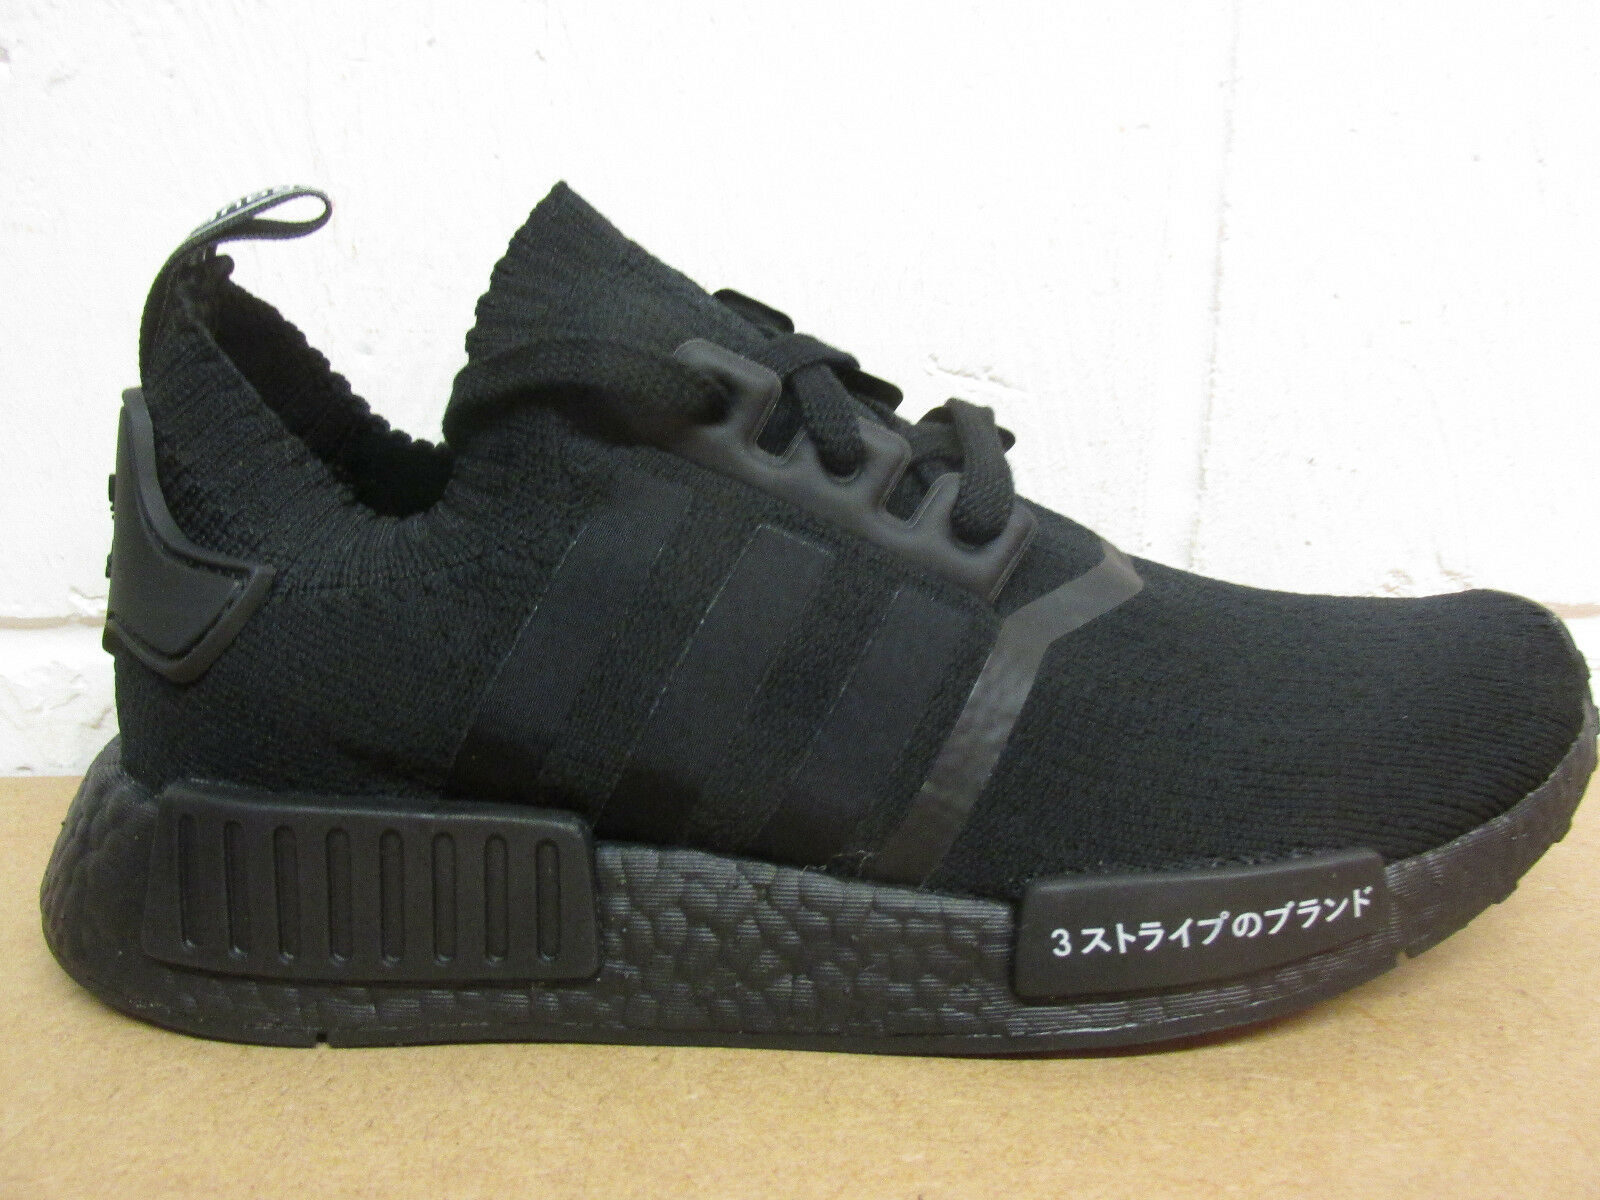 Adidas Originals NMD_R1 PK Running Trainers BZ0220 Sneakers Shoes Prime Knit Wild casual shoes